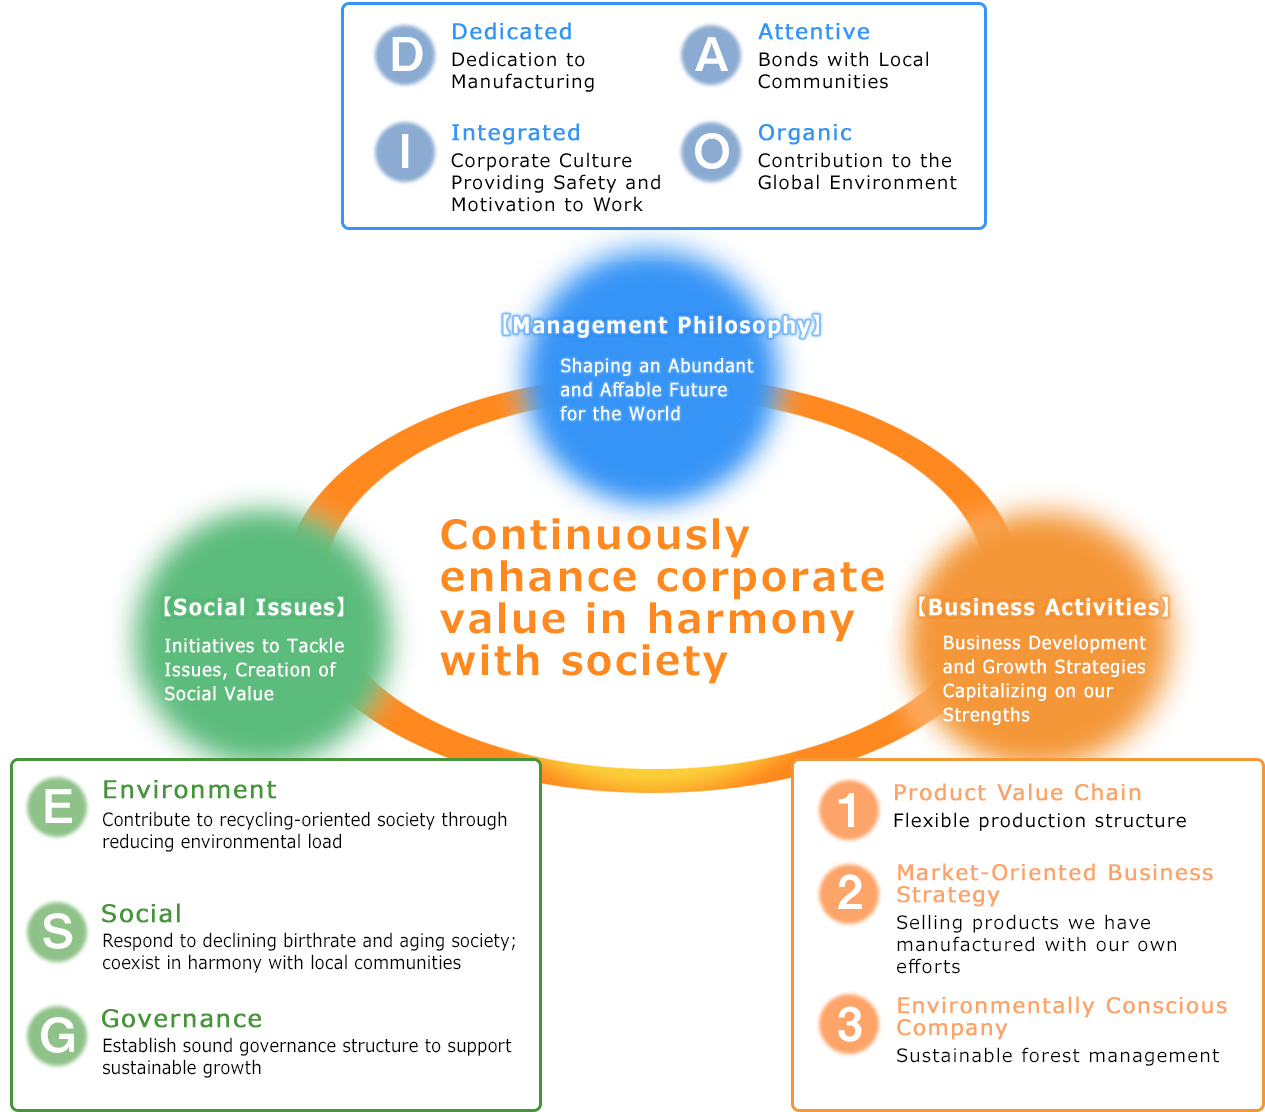 Continuously enhance corporate value in harmony with society